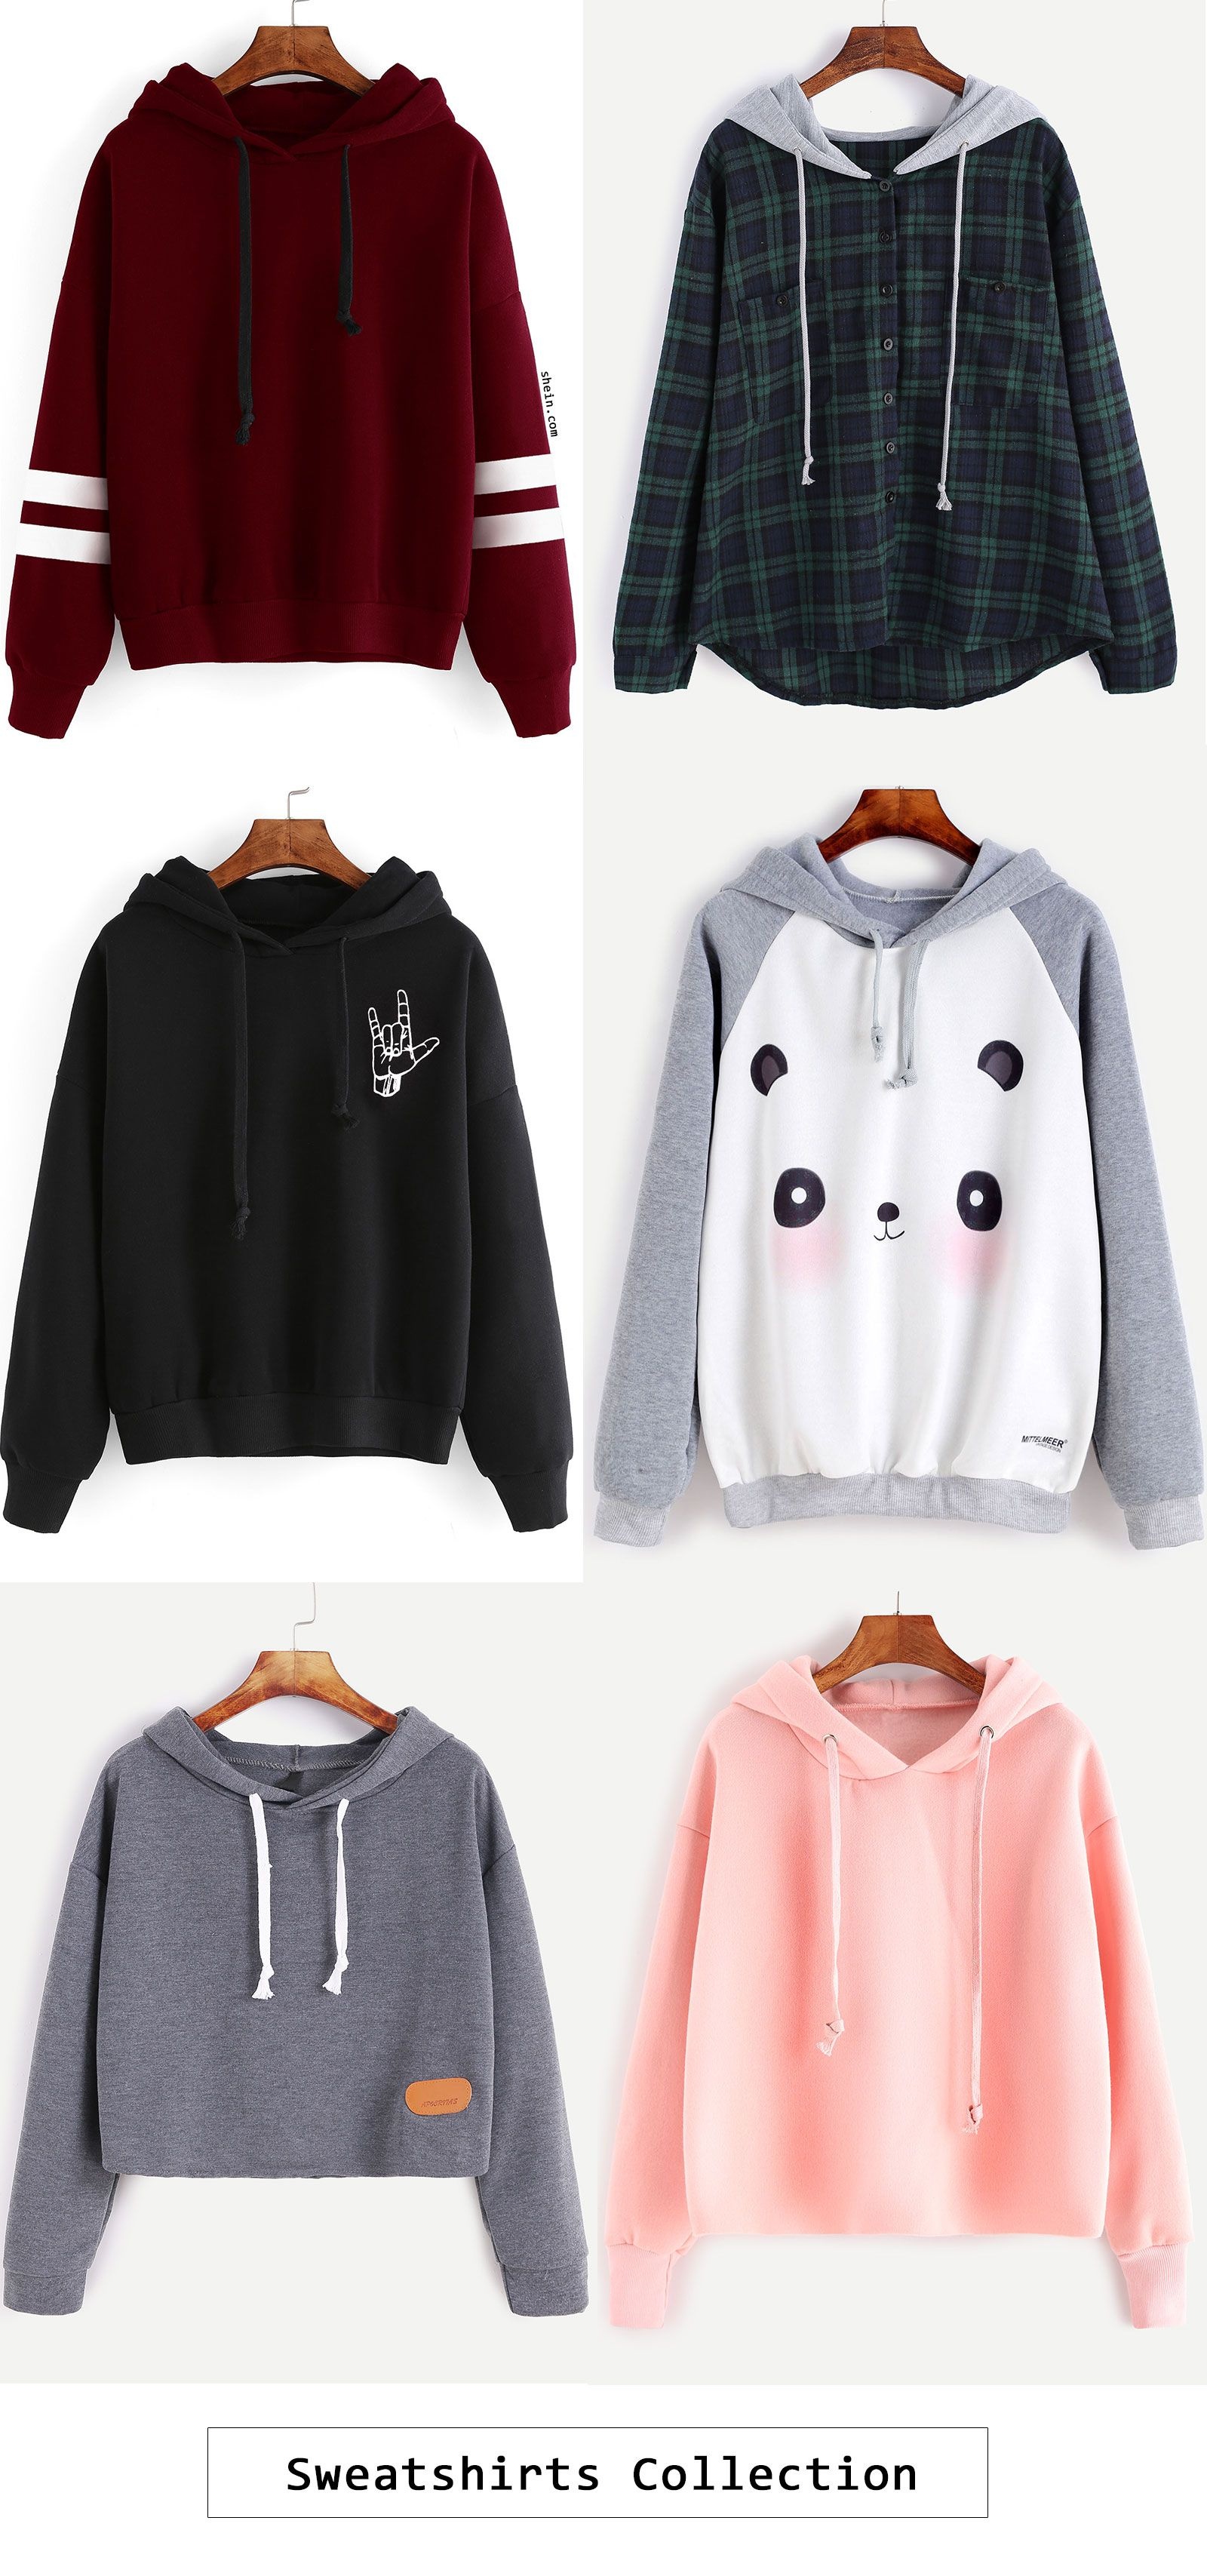 162dbec818 Sweatshirt collection https://tmblr.co/Zuhqqc2Pj0W5R Hipster Girl Outfits,  Hipster